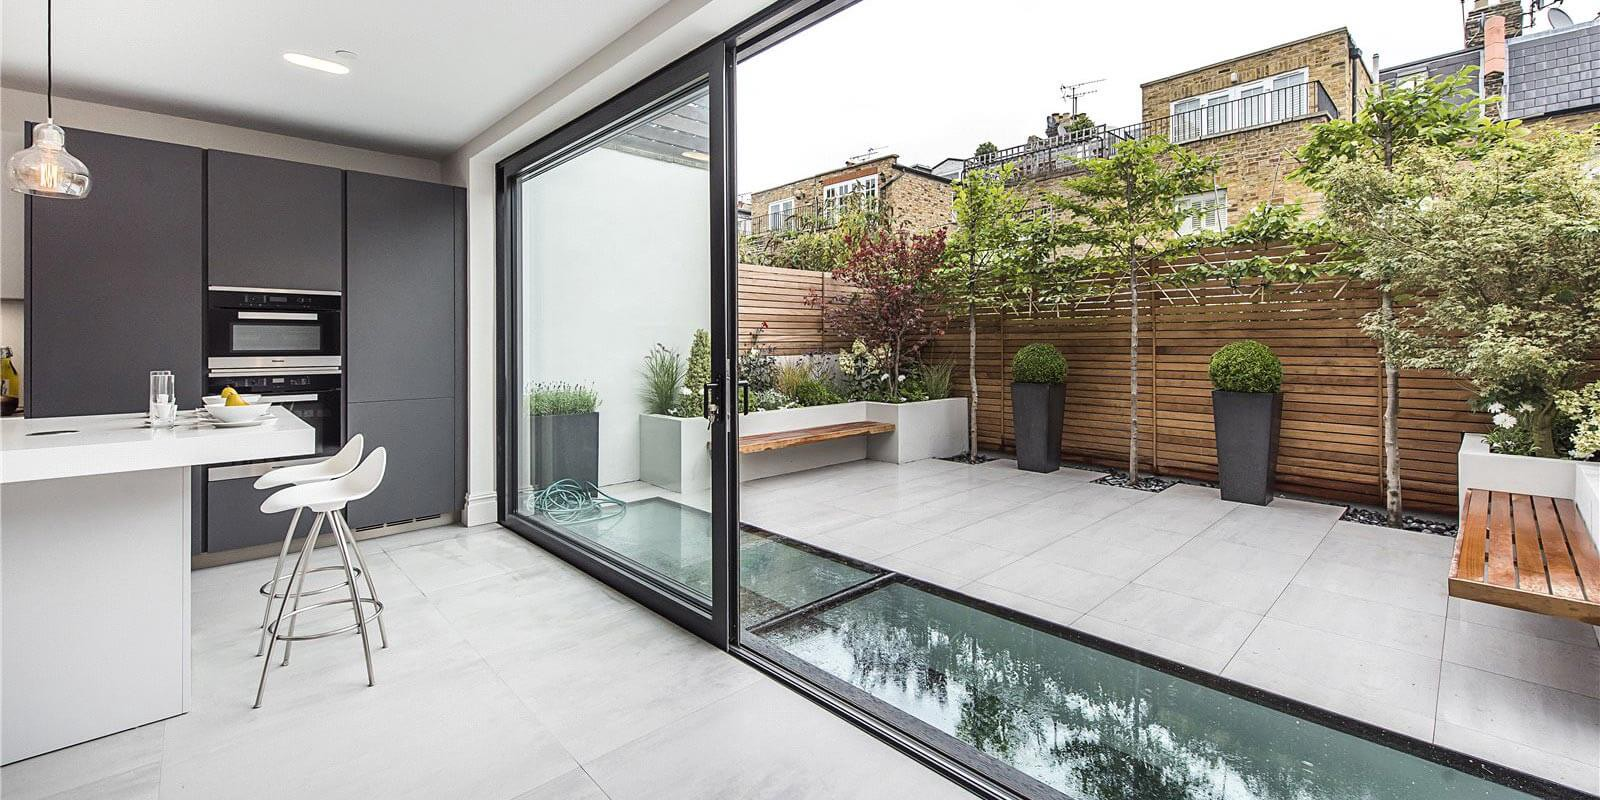 If You Are Looking To Boost The Value Of Your Property And Increase Liveable Space Then A House Extension Can Do You Wonders A House Extension Represents